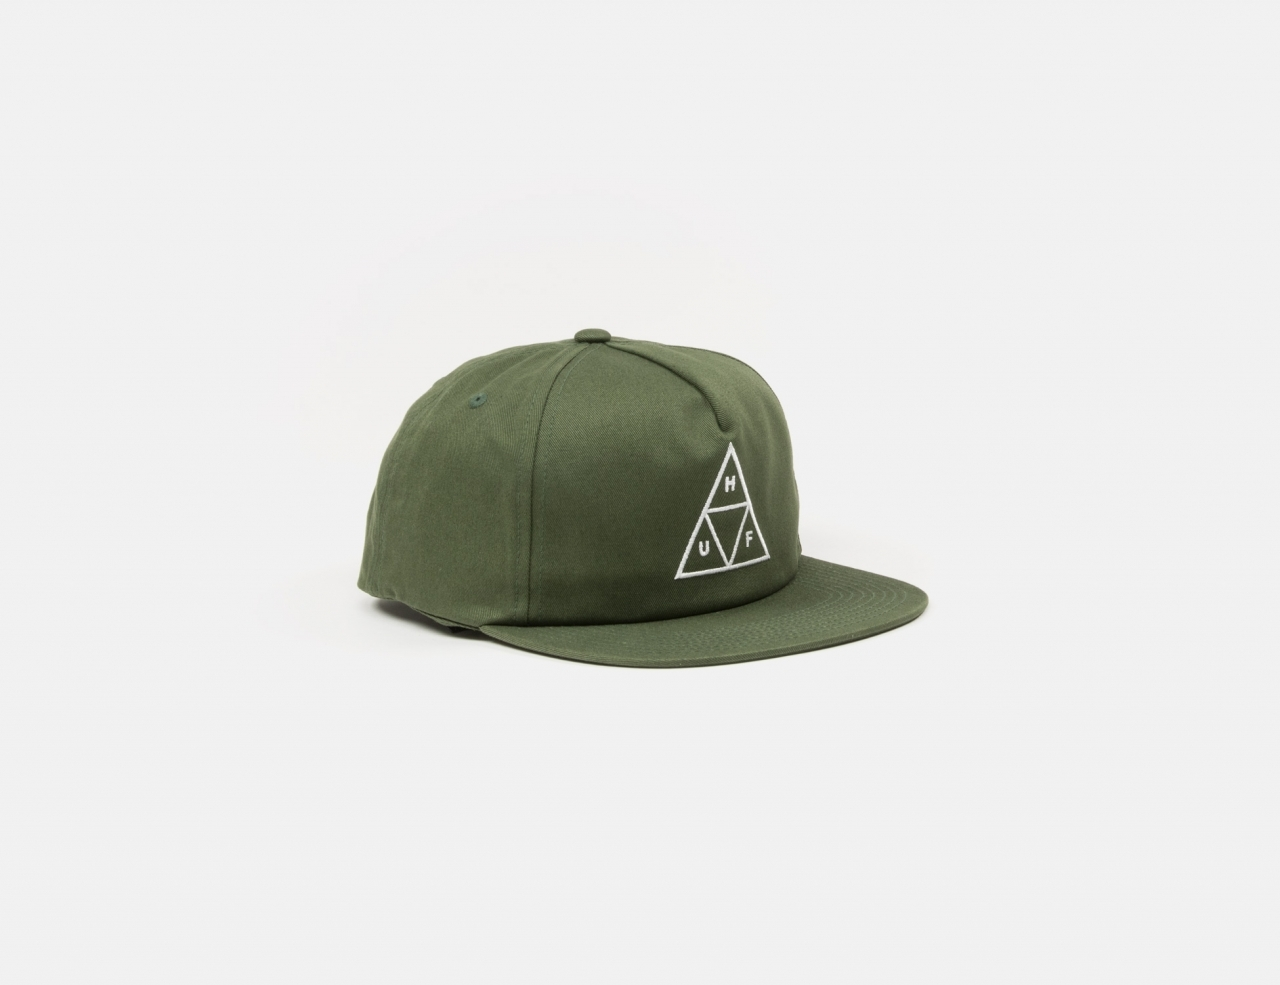 HUF Essentials Unstructured TT Snapback Cap - Military Green